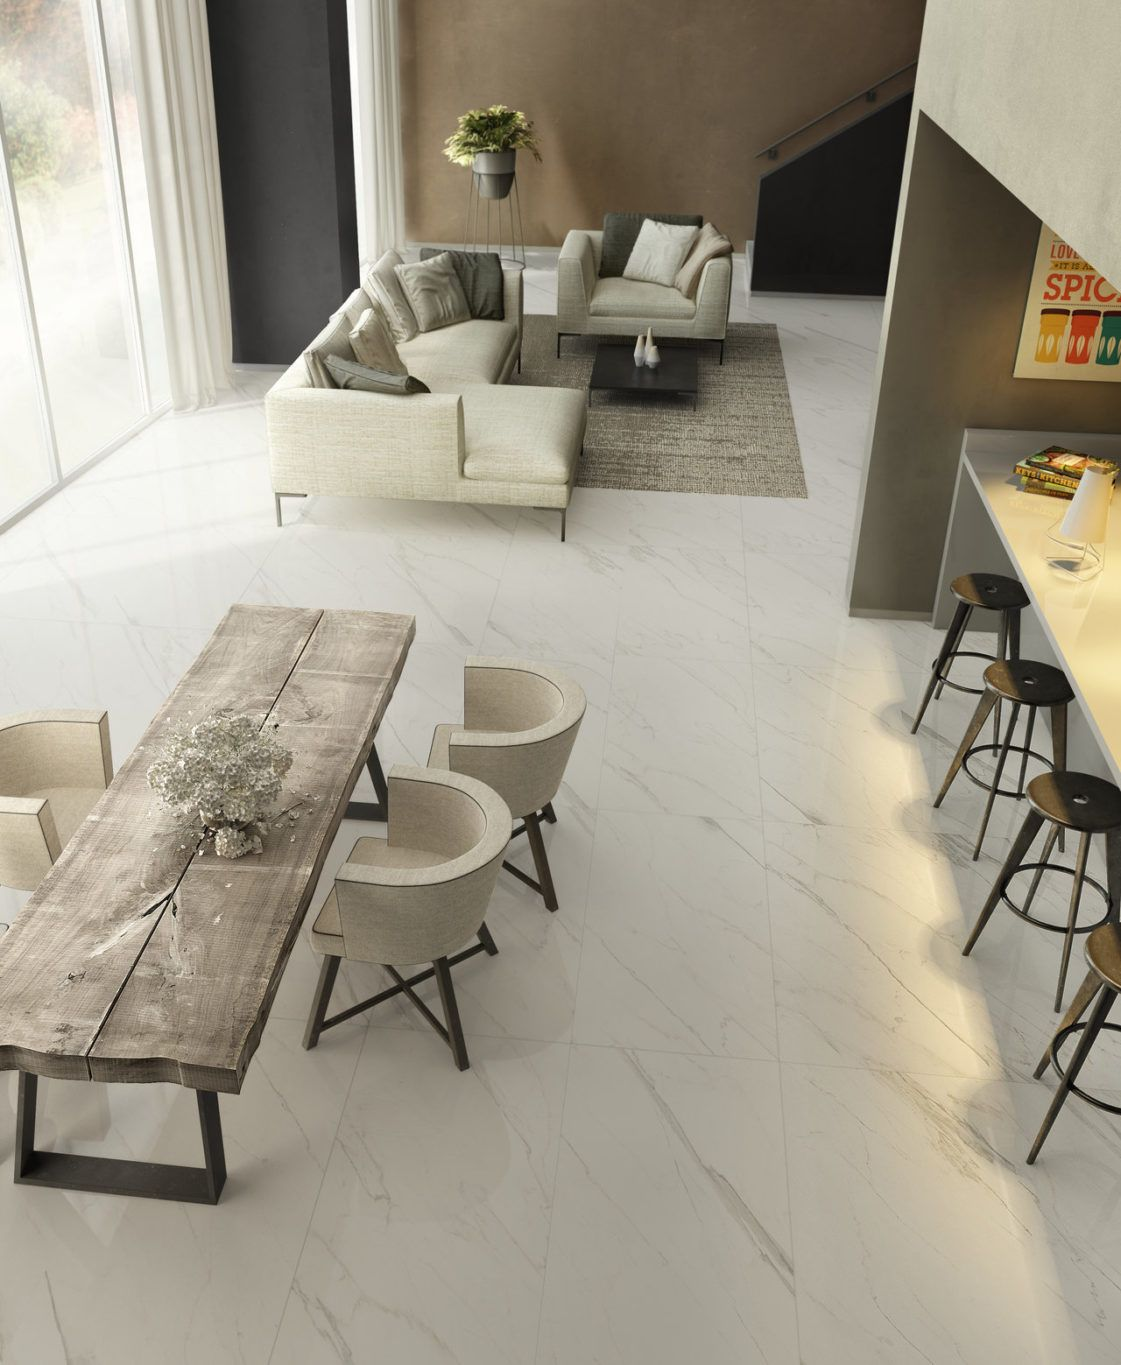 Love How These Large Slabs Of Marble Look Ceramic Tile Unify An Open Floor Plan Whytile Marble Living Room Floor Dining Room Floor Tile Floor Living Room